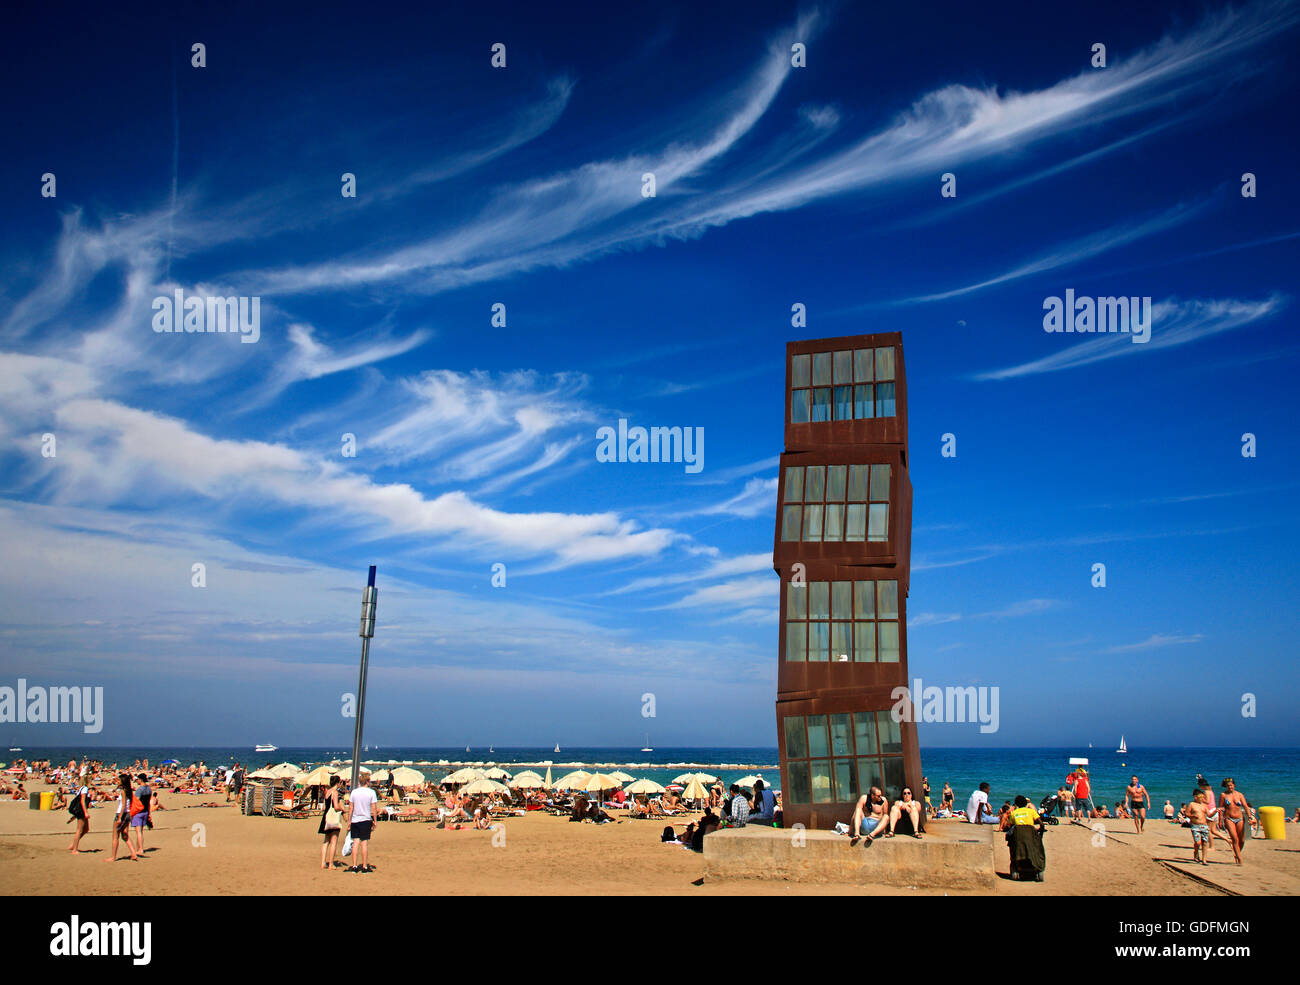 'L'estel ferit'  artistic installation by Rebecca Horn, Barceloneta beach, Barcelona, Catalonia, Spain. - Stock Image